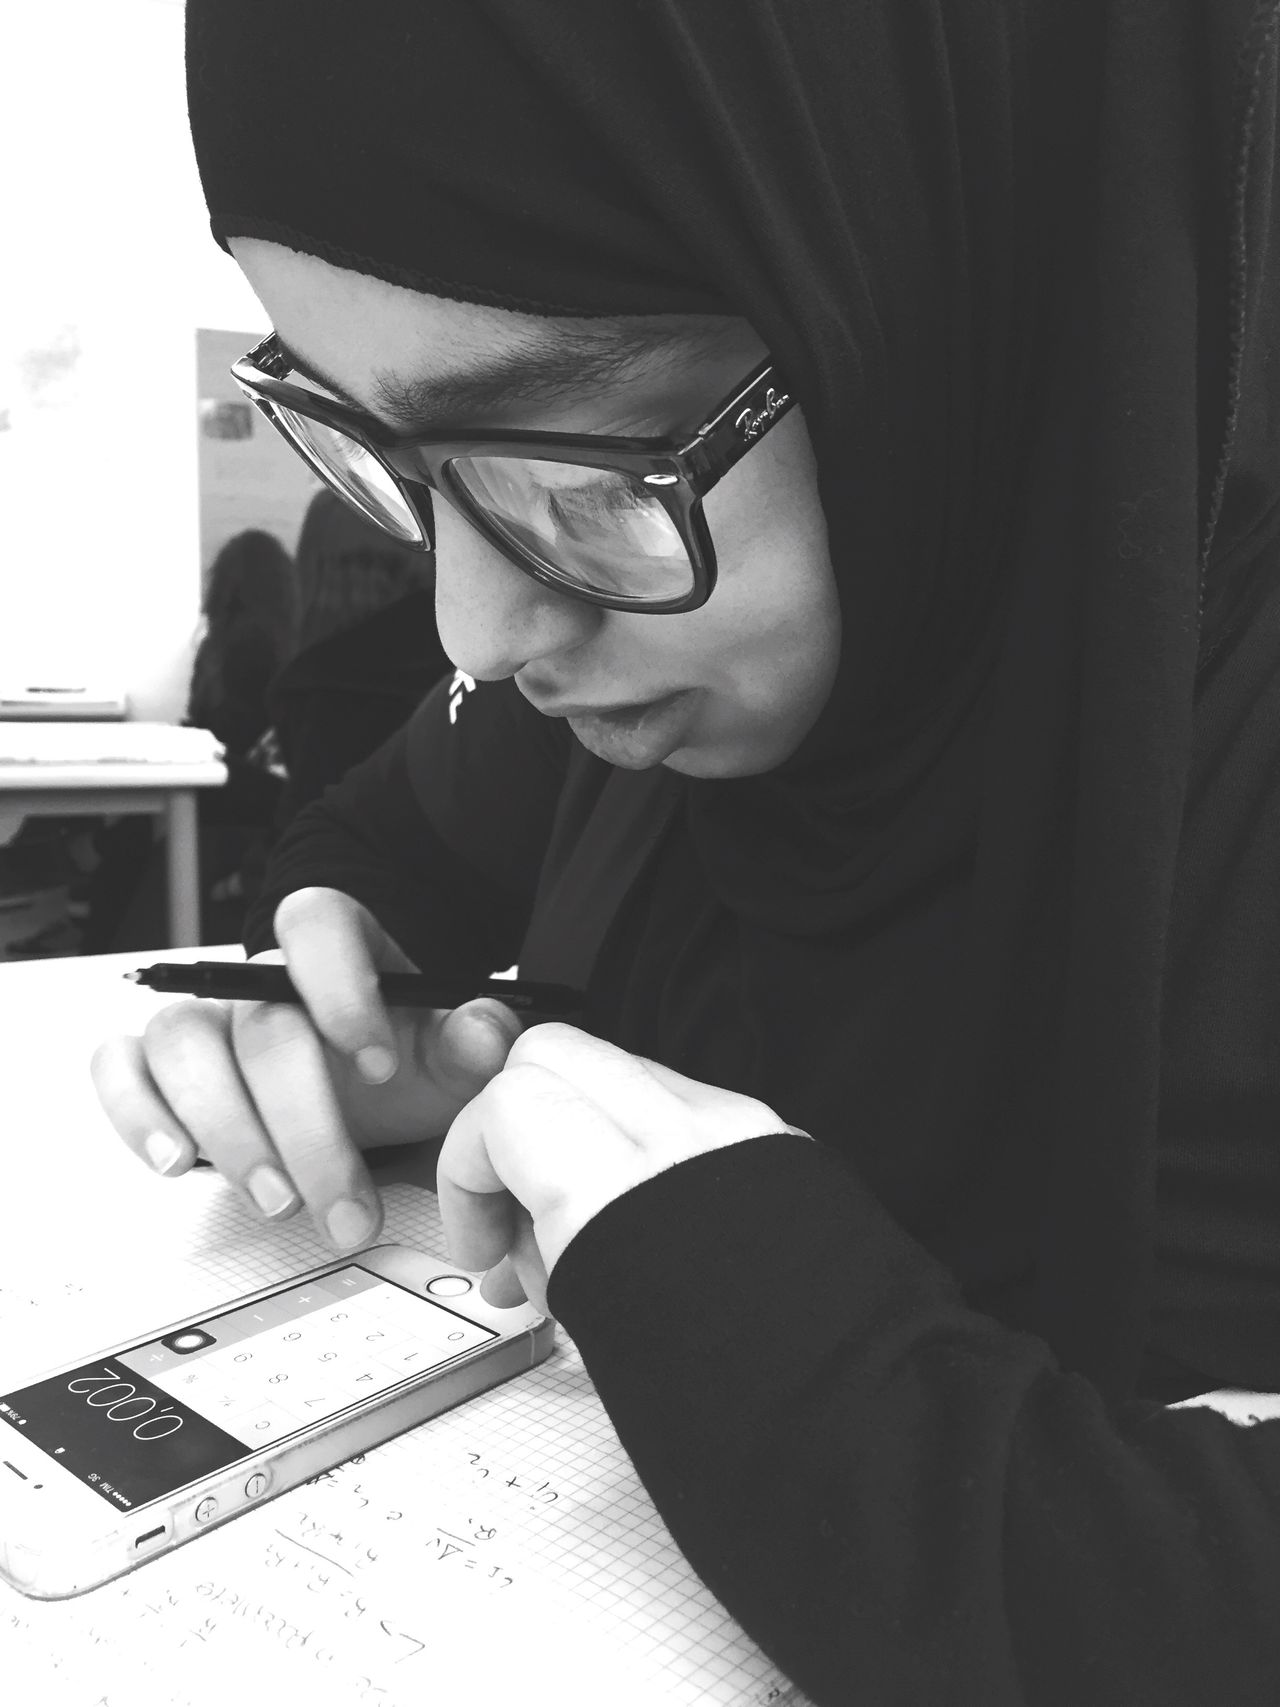 Studying Hard Real People One Person Table Indoors  Lifestyles Paper Writing Young Adult Eyeglasses  Glasses Day Close-up Human Hand Mobile Conversations